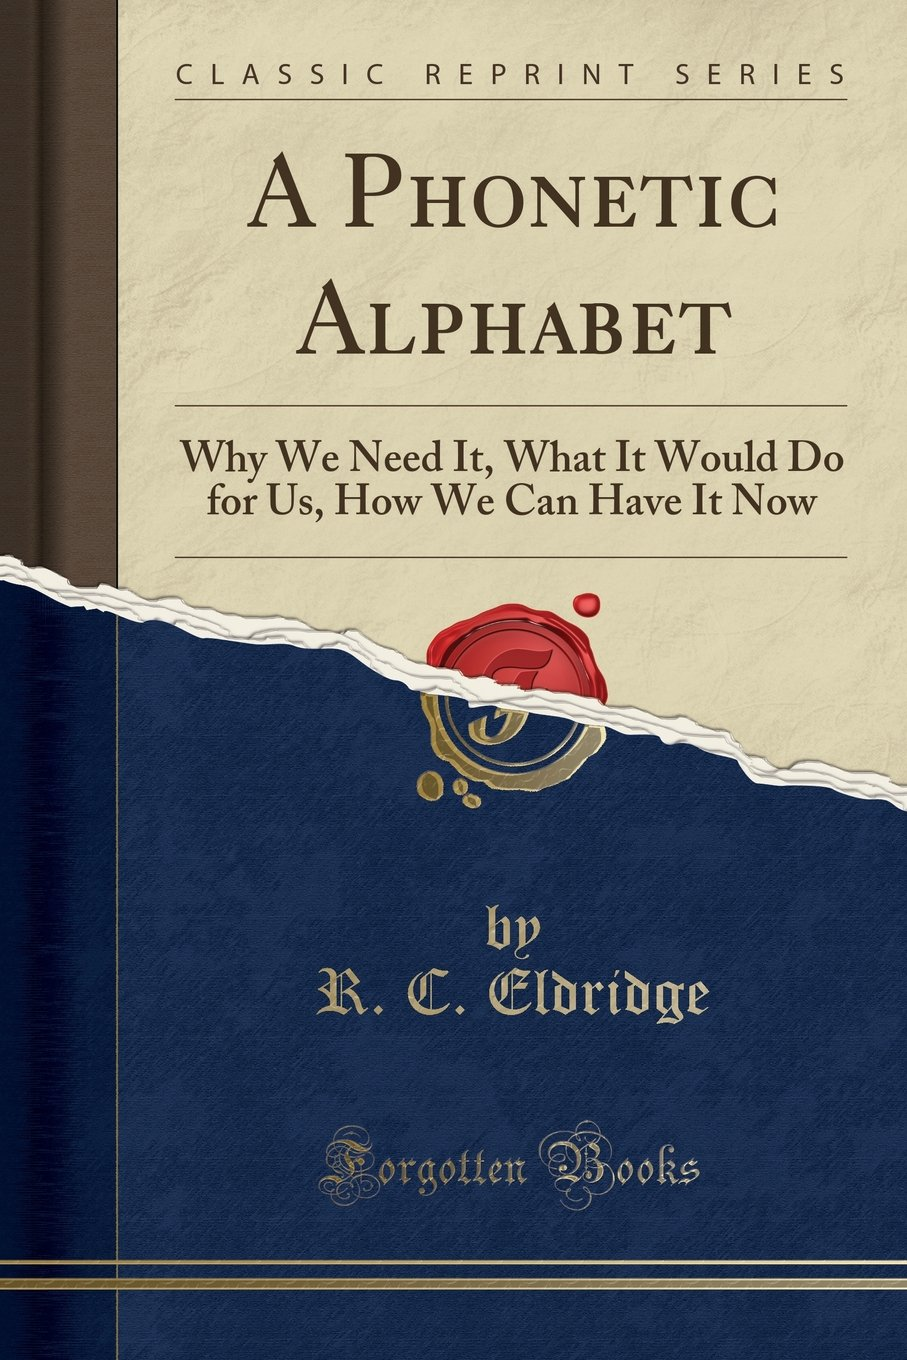 A Phonetic Alphabet: Why We Need It, What It Would Do for Us, How We Can Have It Now (Classic Reprint) pdf